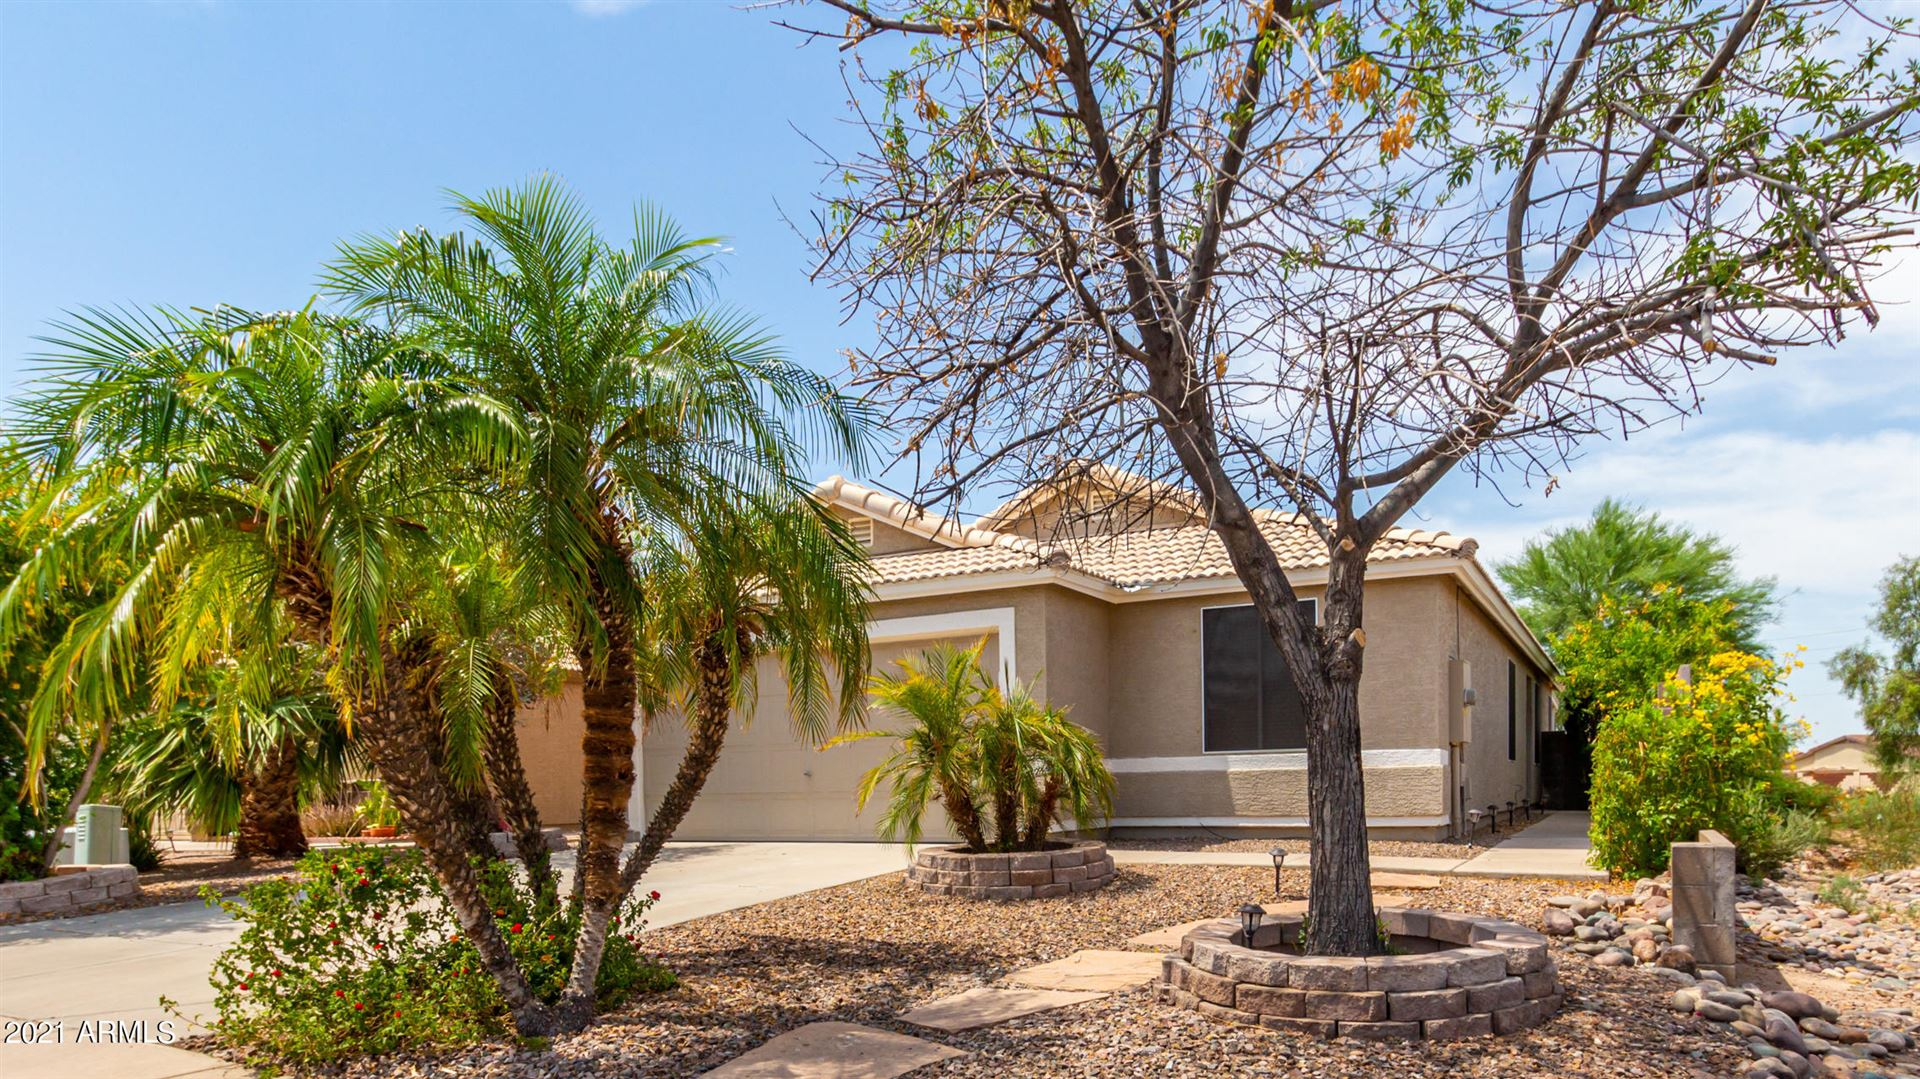 Photo of 2074 S LAWTHER Drive, Apache Junction, AZ 85120 (MLS # 6263849)